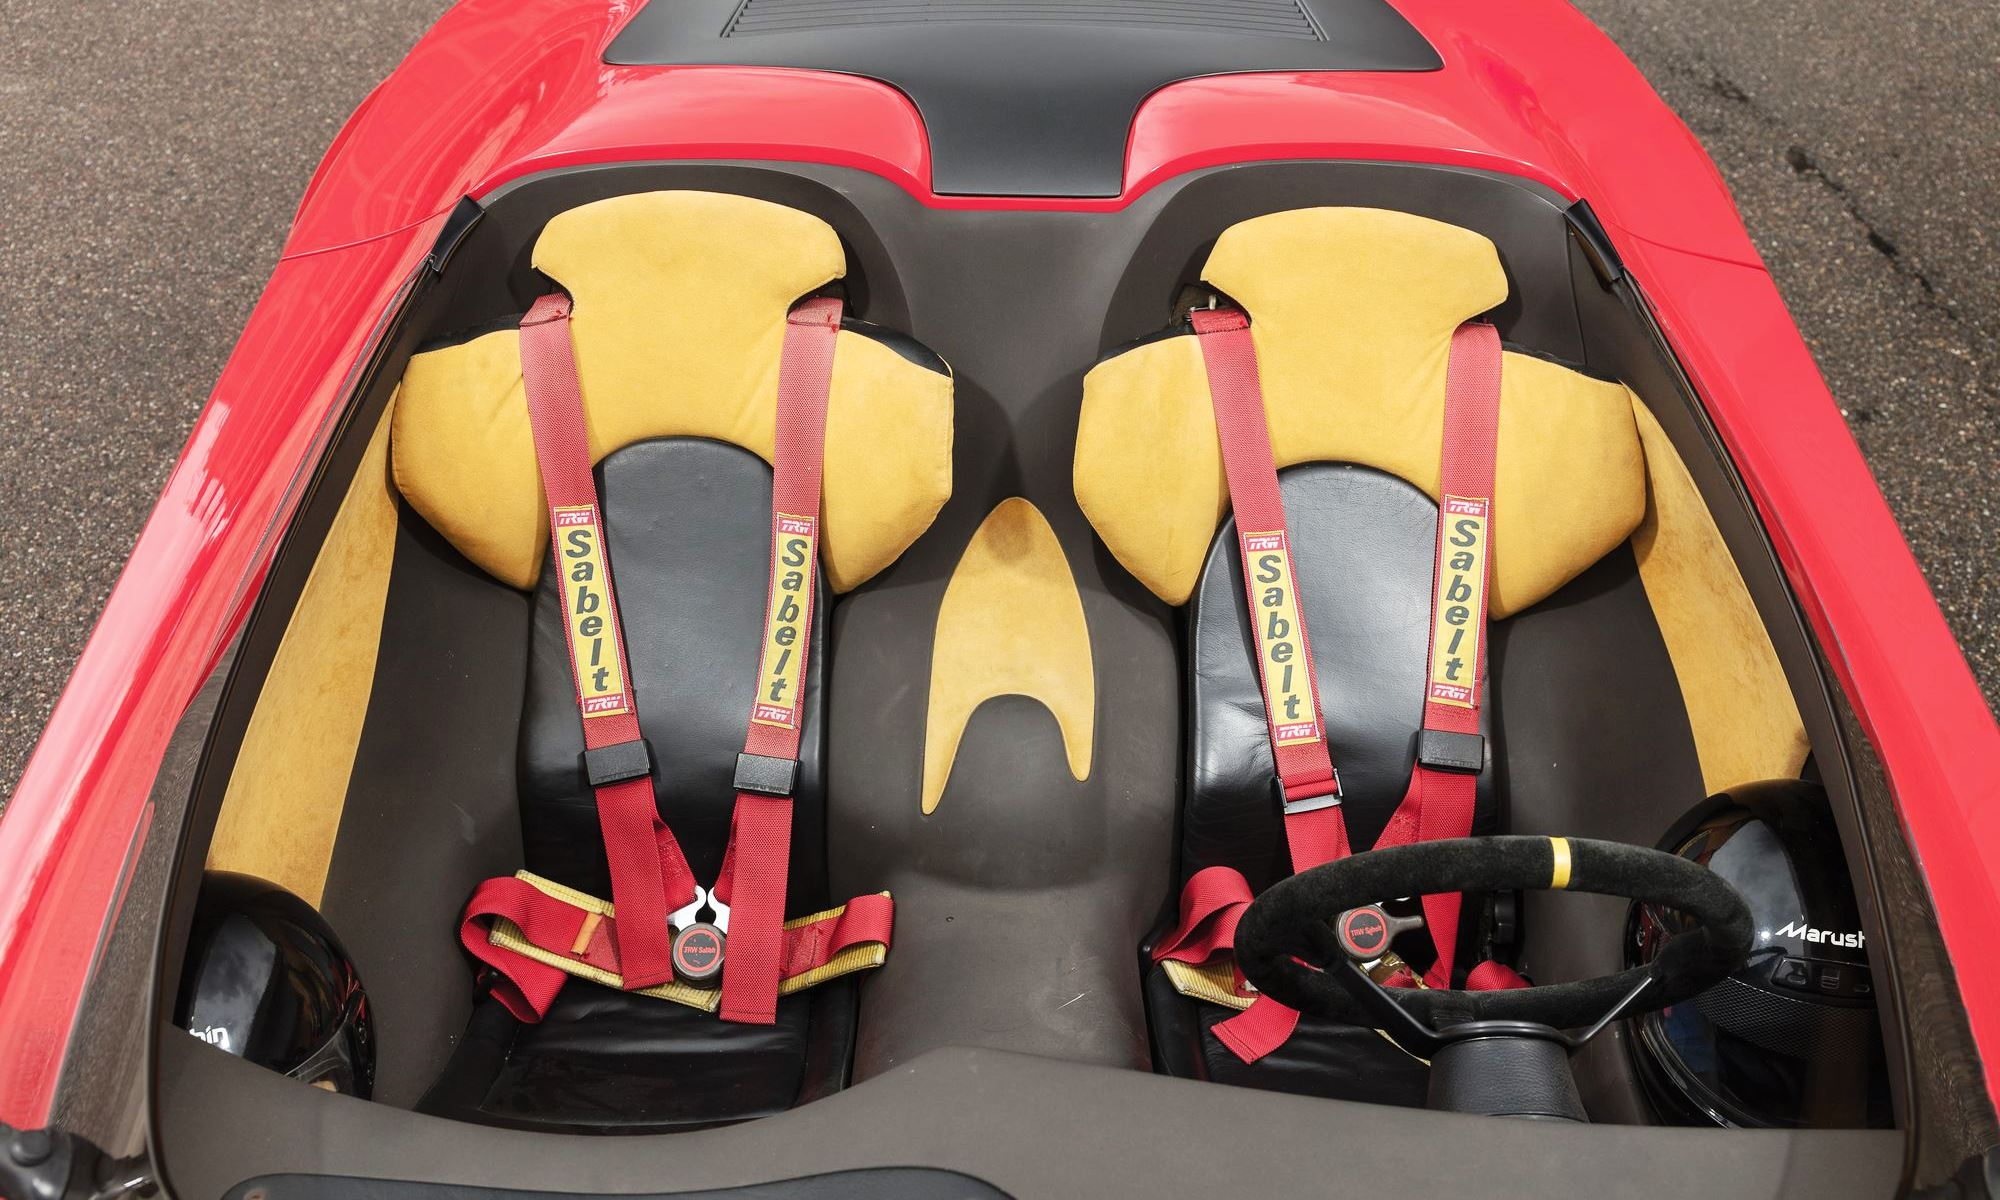 Ferrari Conciso seats